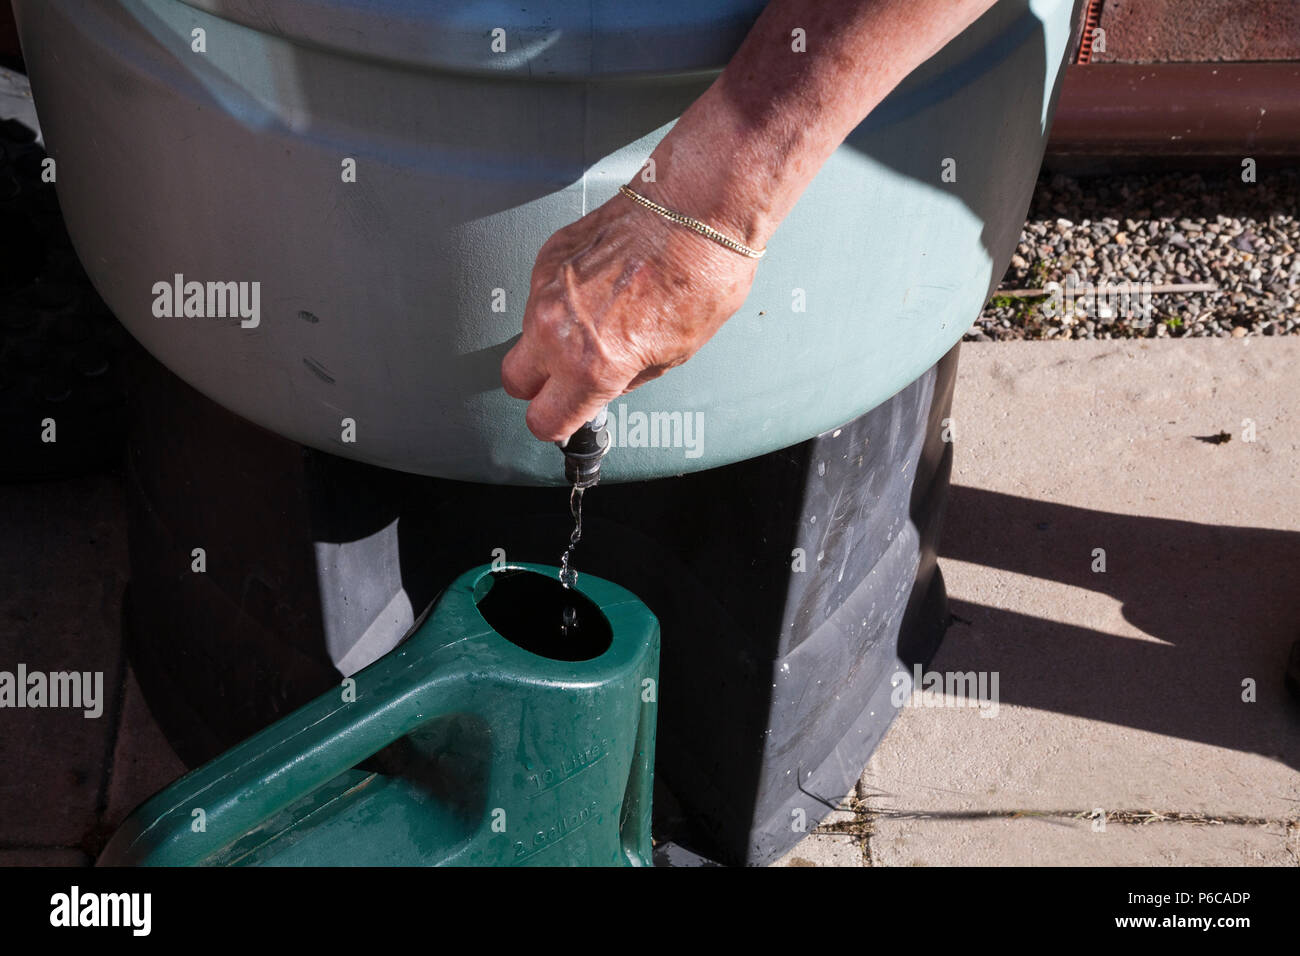 Elderly woman turning tap on waterbutt to fill watering can to water plants during drought - Stock Image